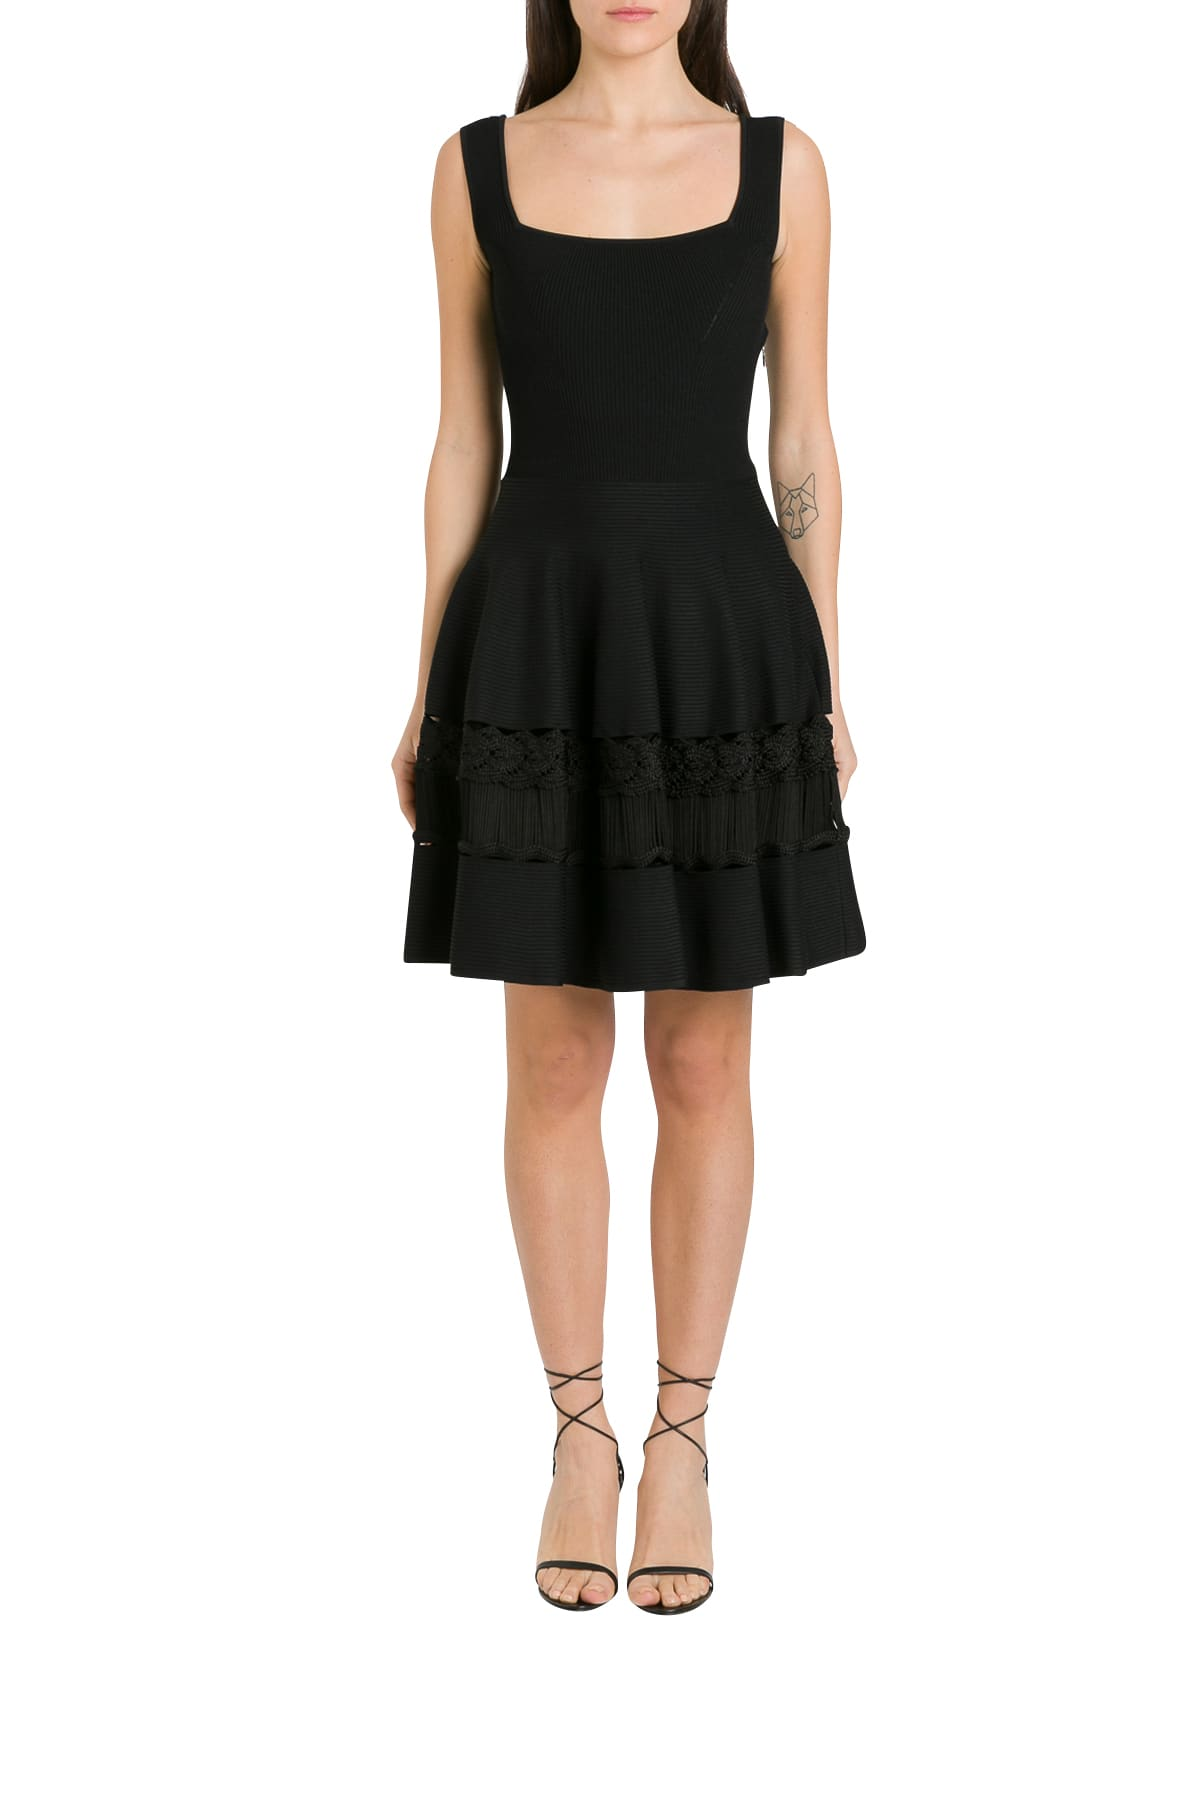 Buy Alexander McQueen Stretch Knit Dress online, shop Alexander McQueen with free shipping